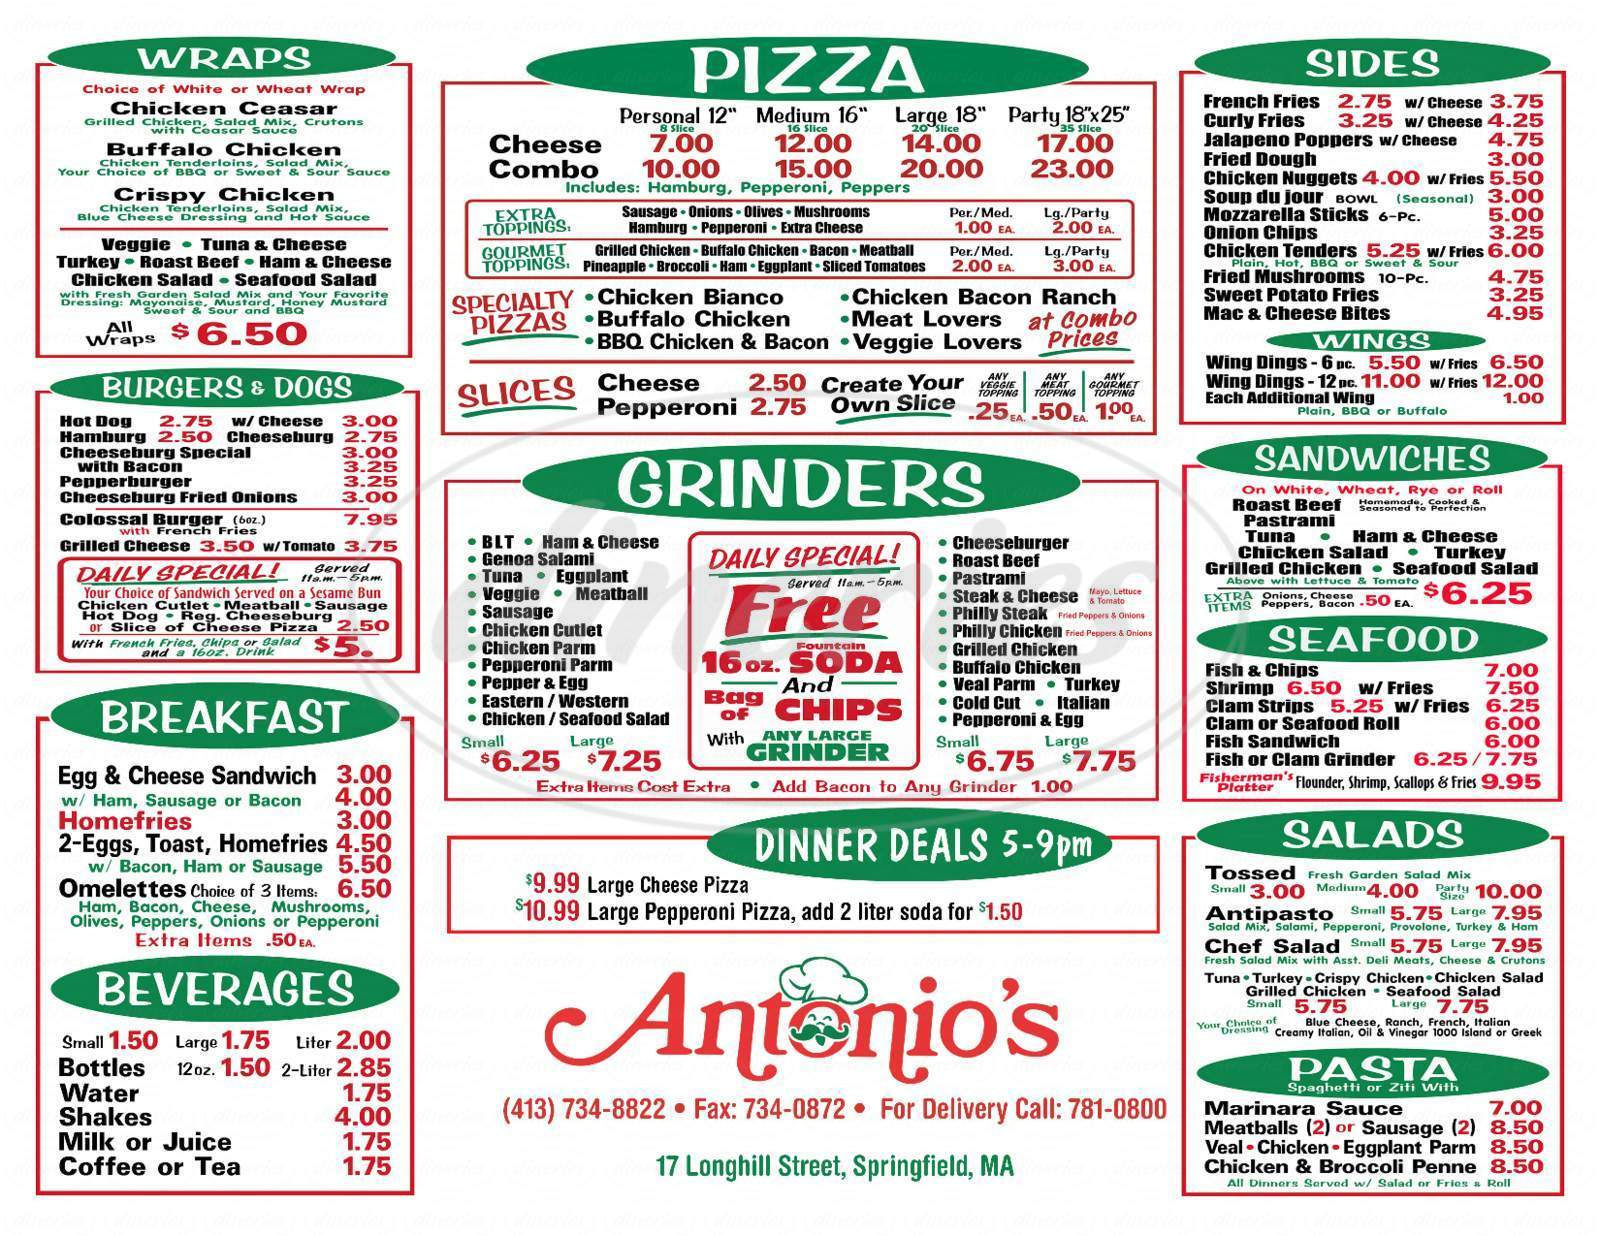 menu for Antonio's Grinders